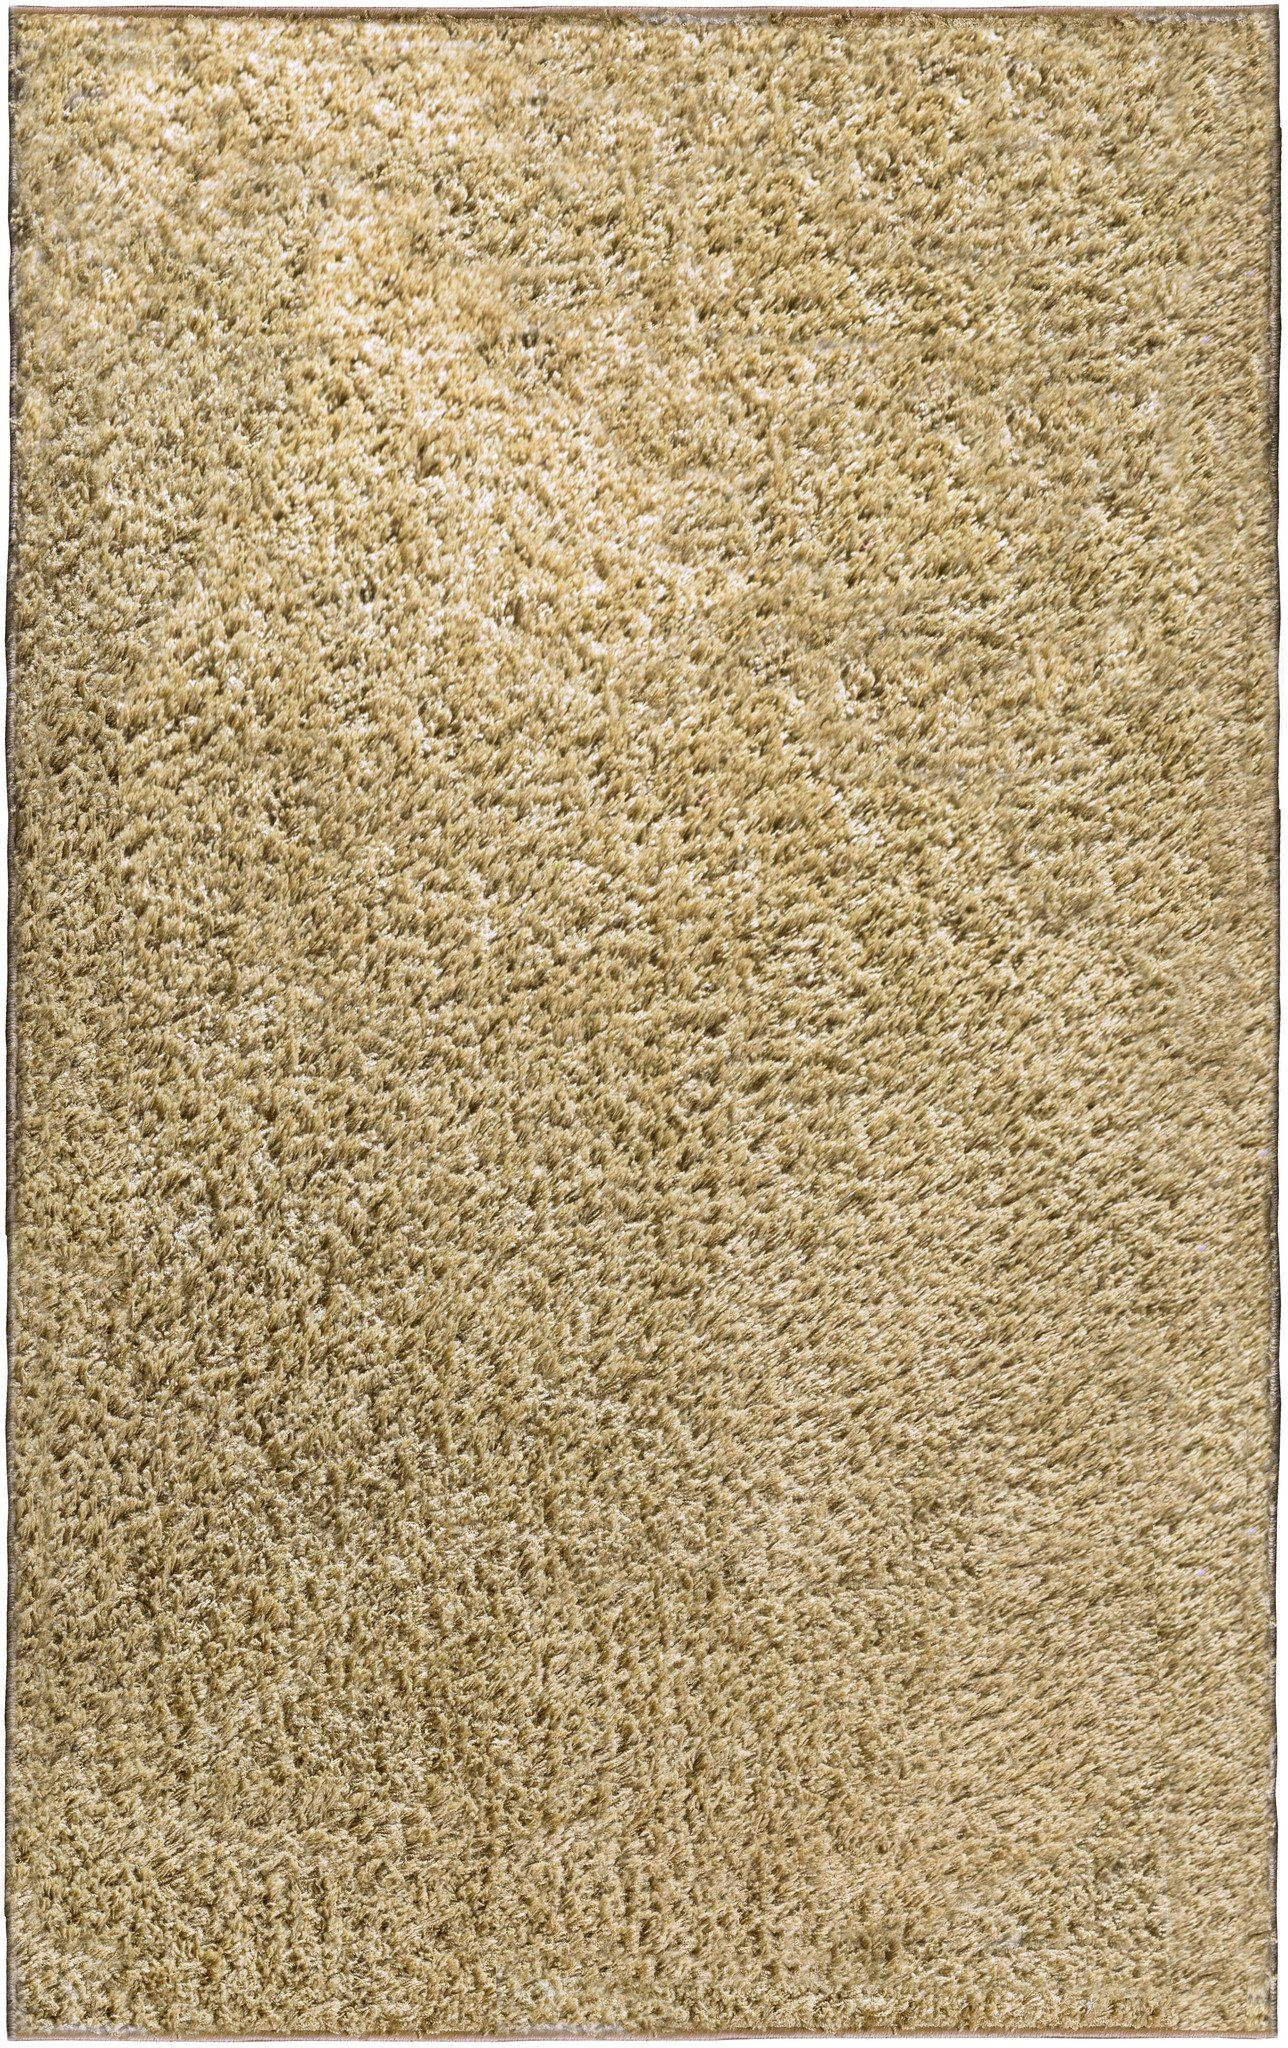 Surya Arlie ARE9006 Neutral Solid Area Rug | Products | Pinterest ...